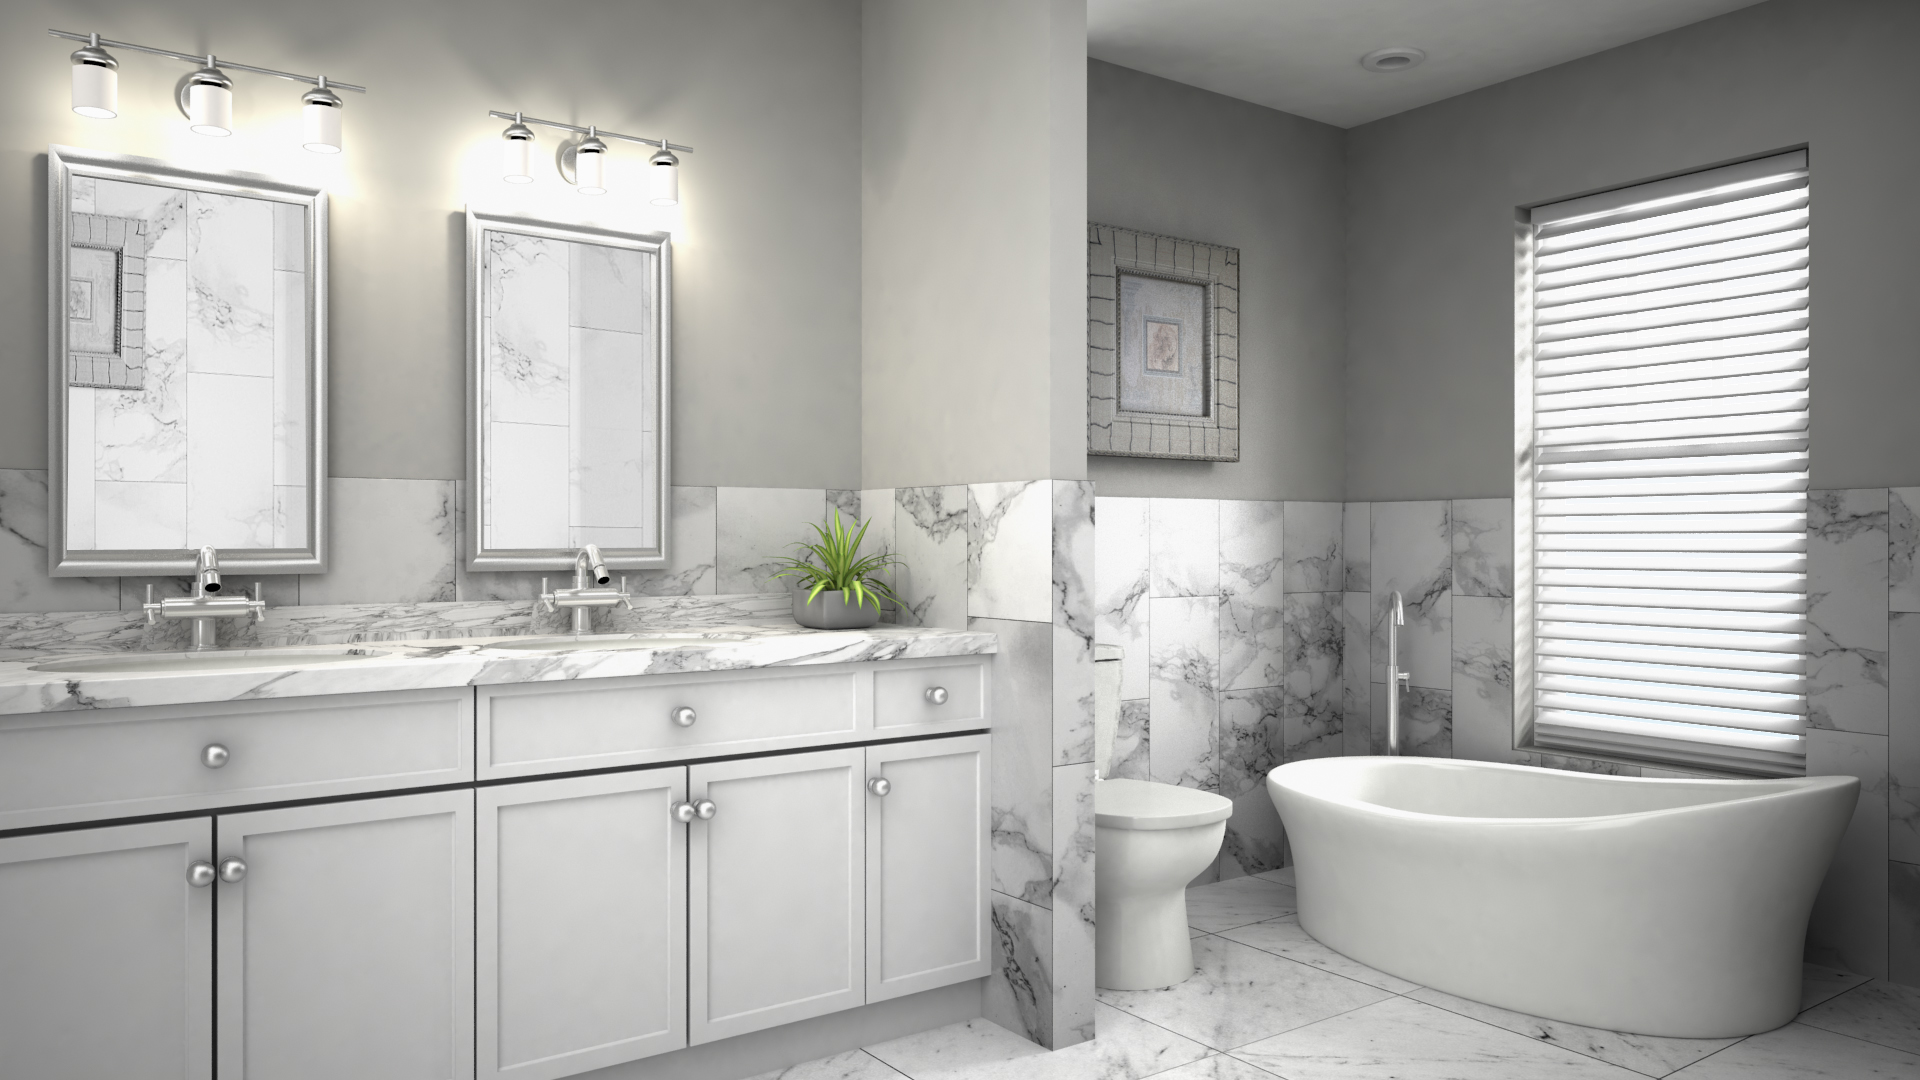 138 W Maple Street – Master Bathroom I